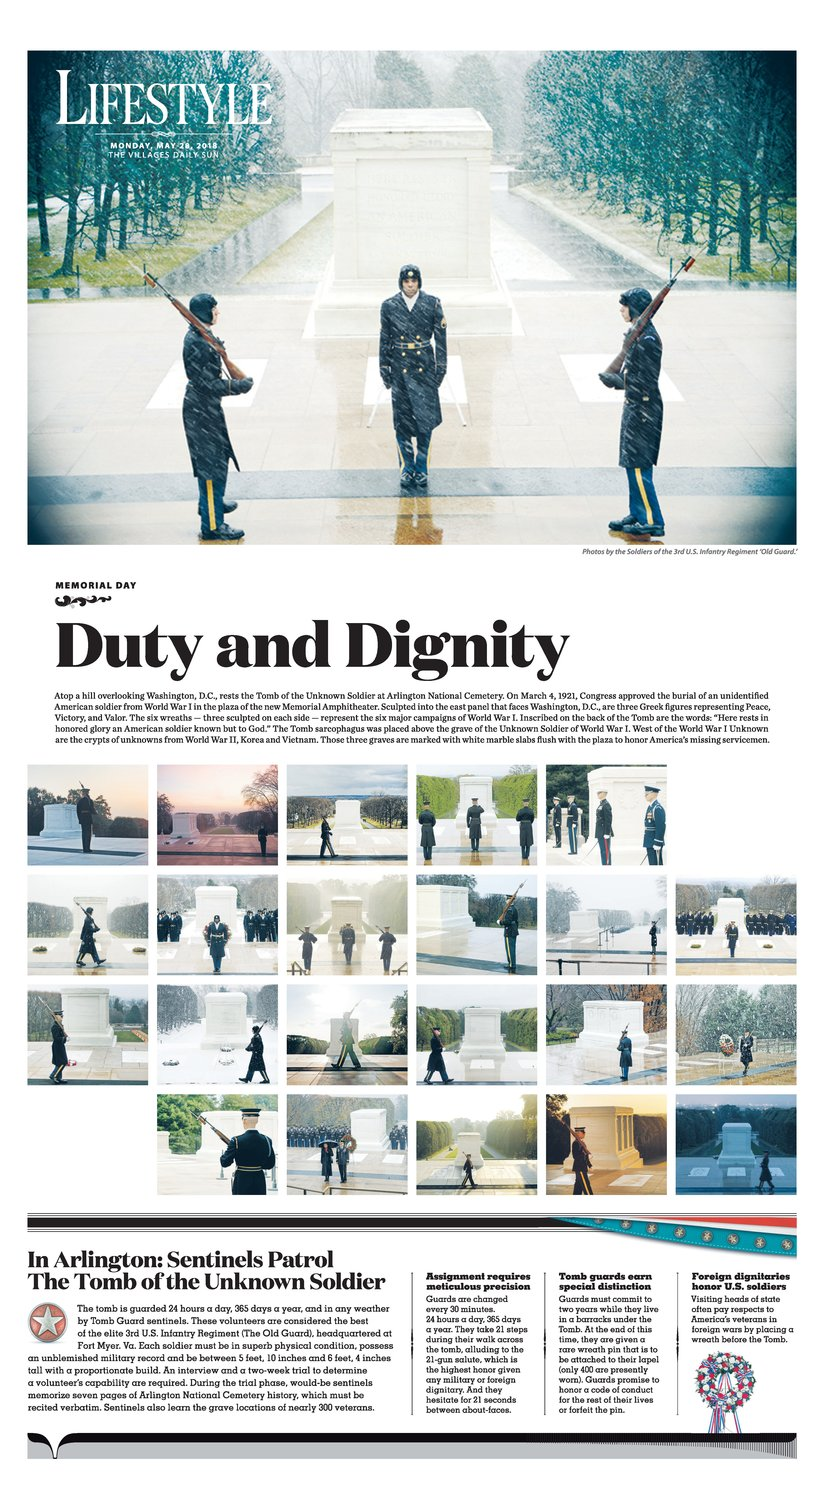 The Villages (Florida) Daily Sun placed first in Picture Use—Features in the News Photo Contest for this photo display of the routine of guards at The Tomb of the Unknown Soldier.